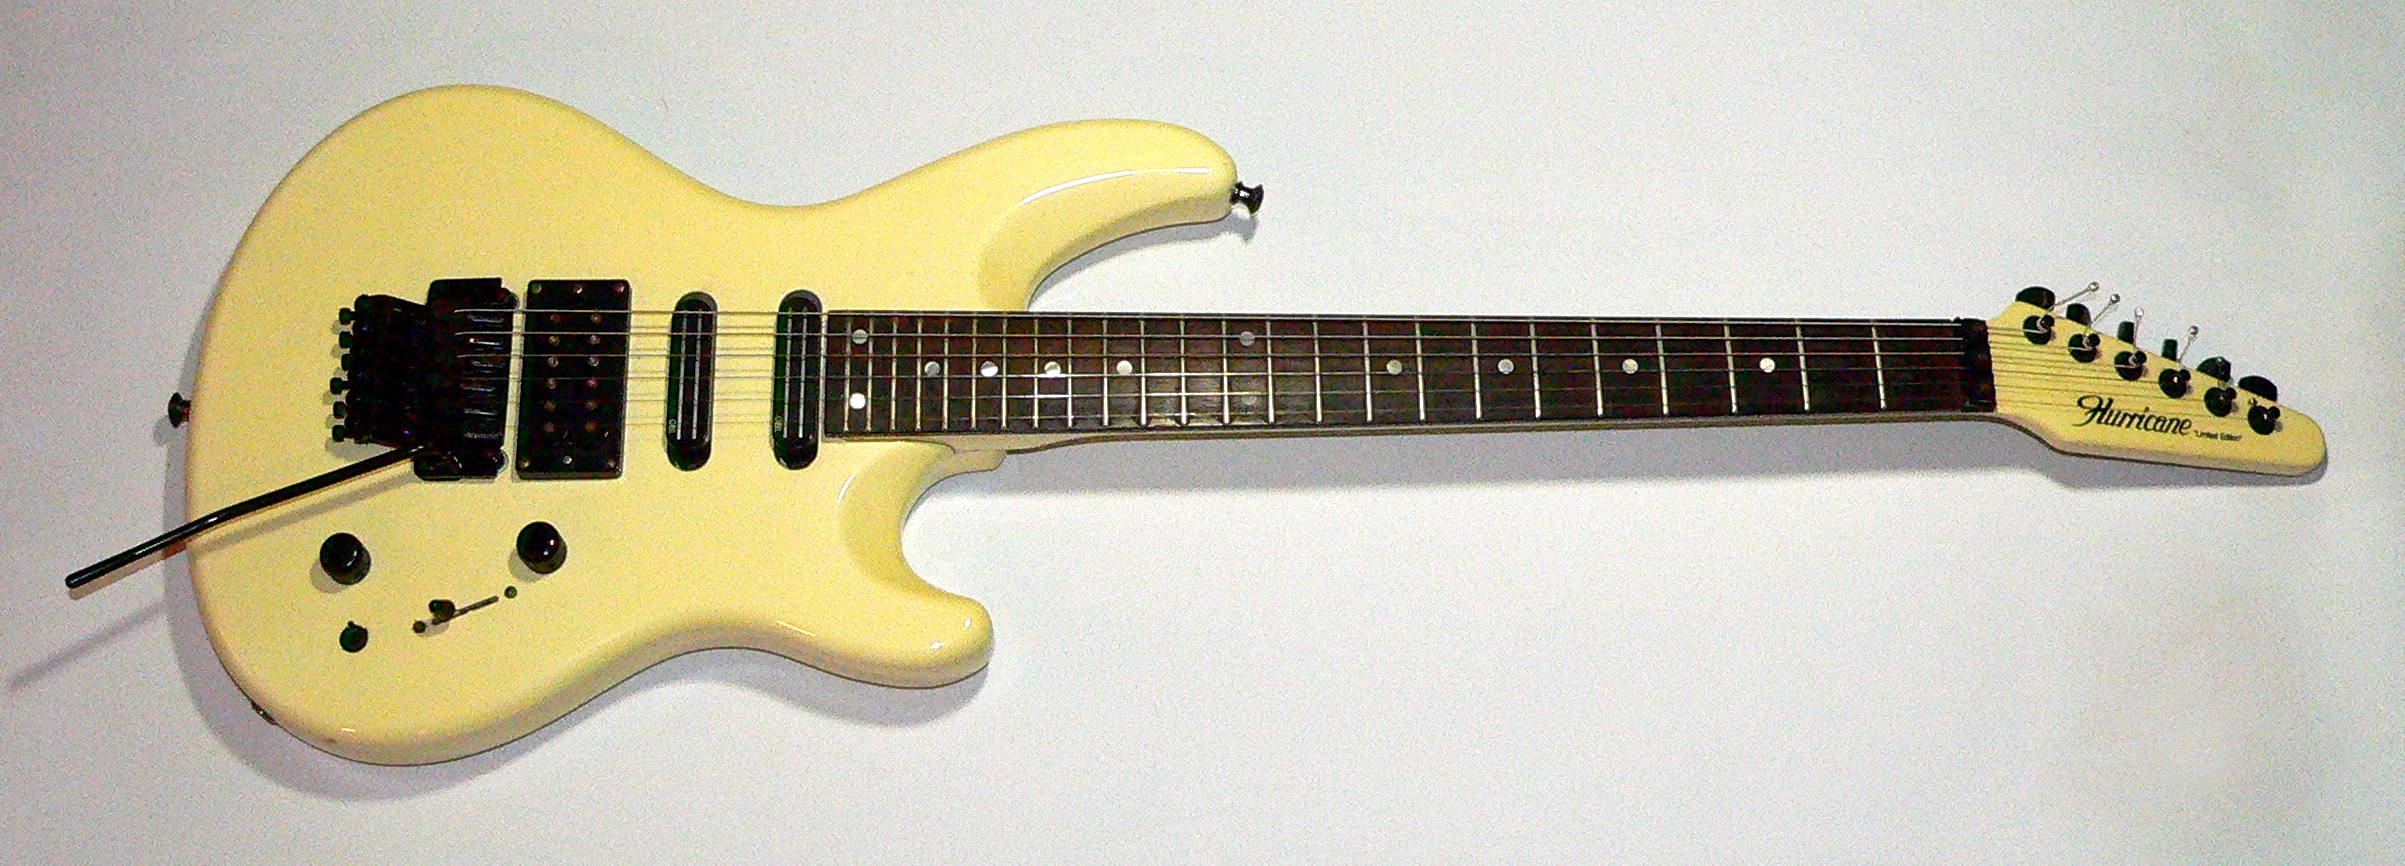 E-Gitarre  HURRICANE Limited Edition